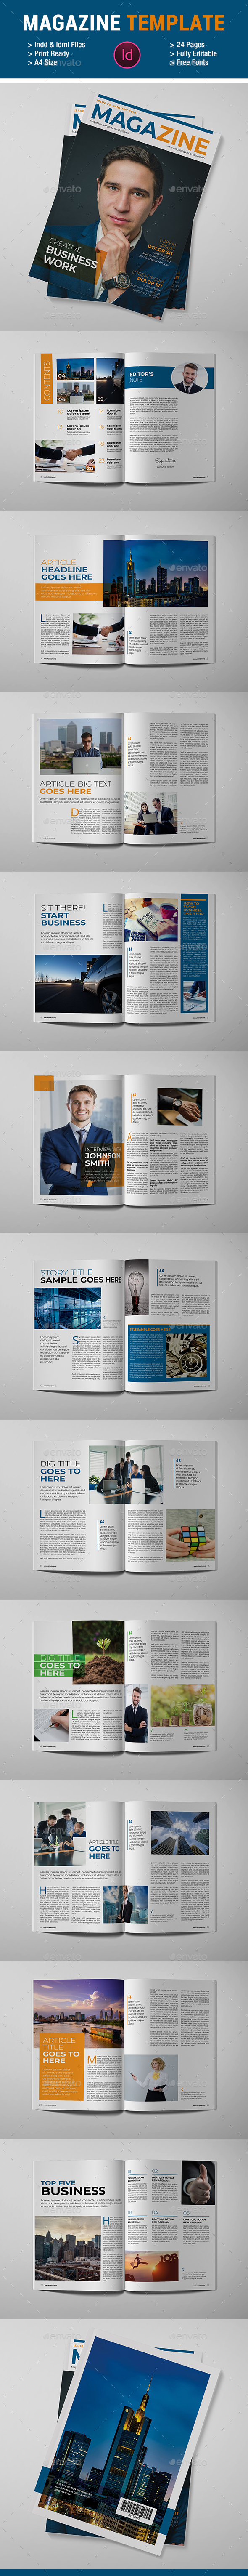 Business Magazine Template - Magazines Print Templates